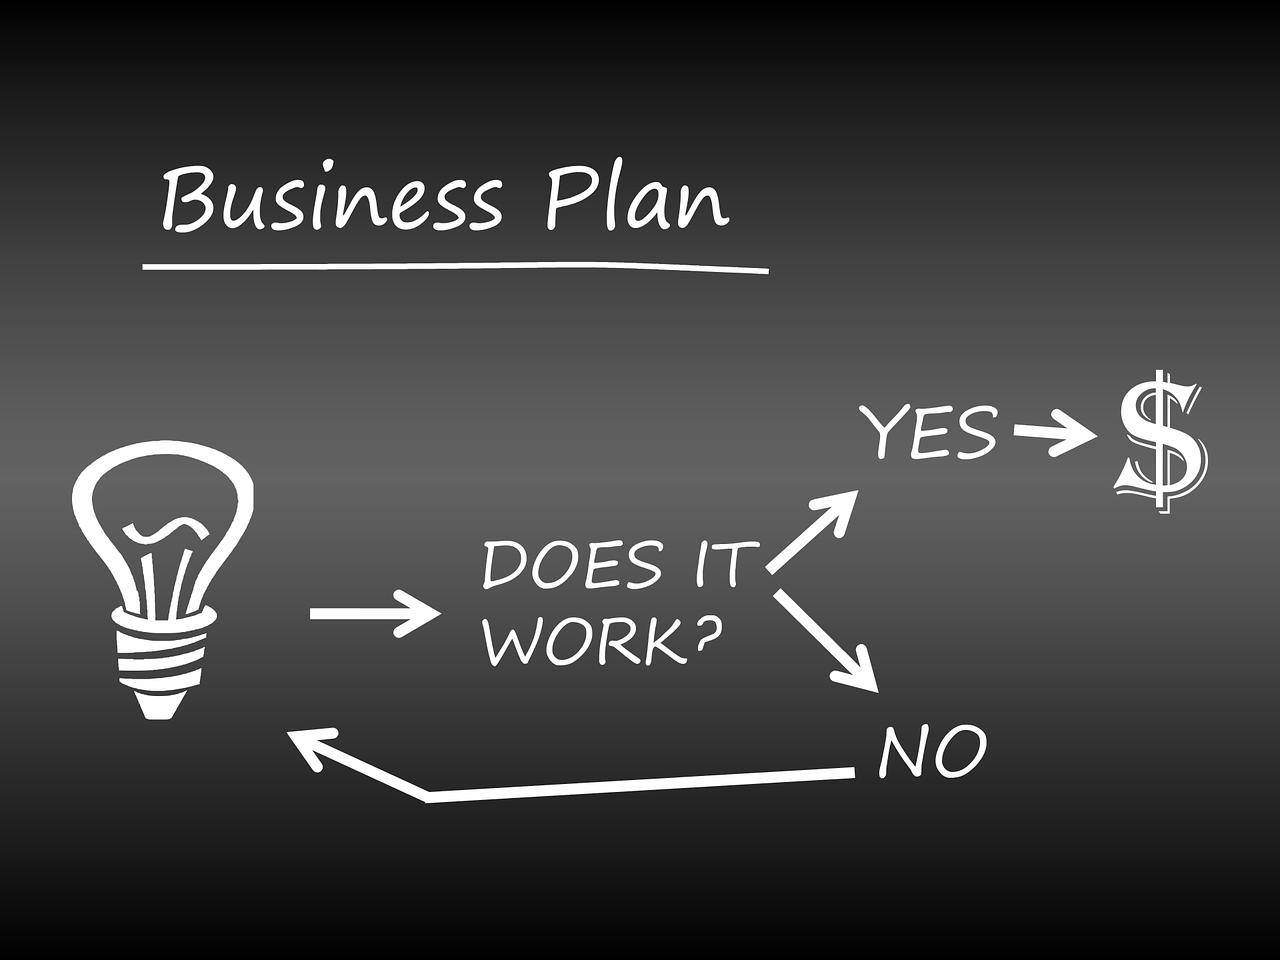 Business owner or Franchisee, which one will be better for you?